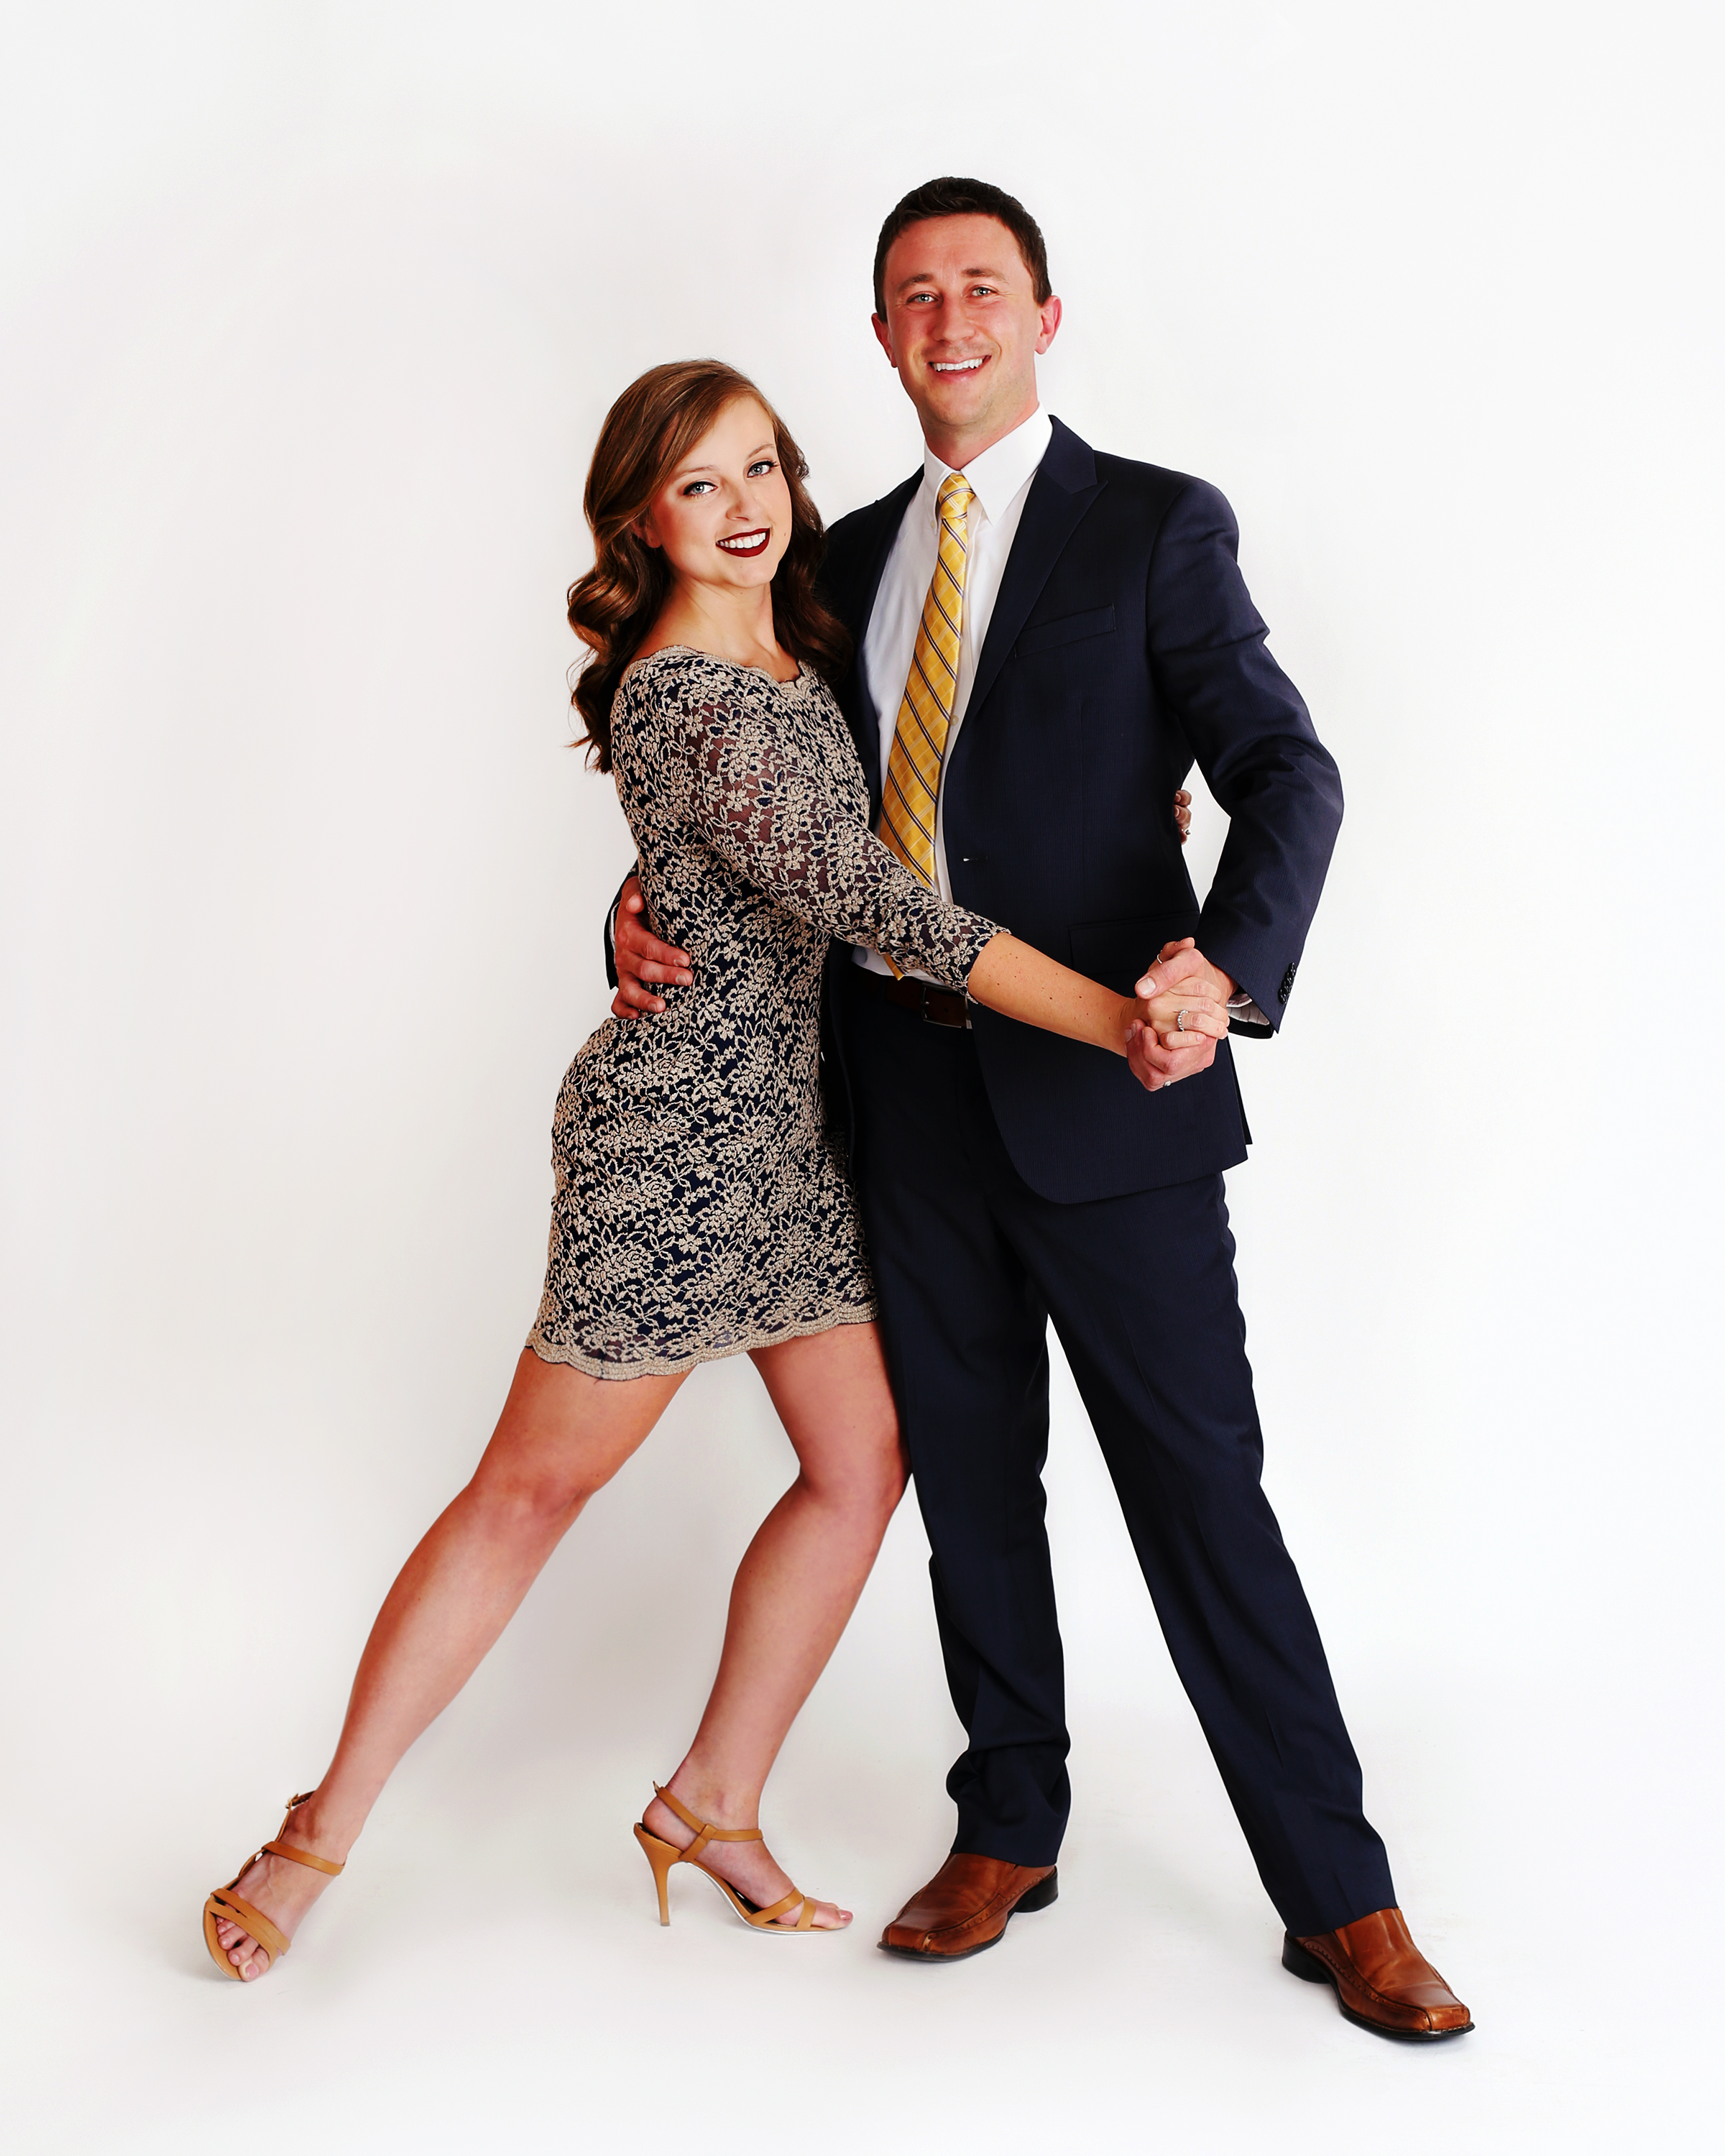 Colin Strub and Katie Byers